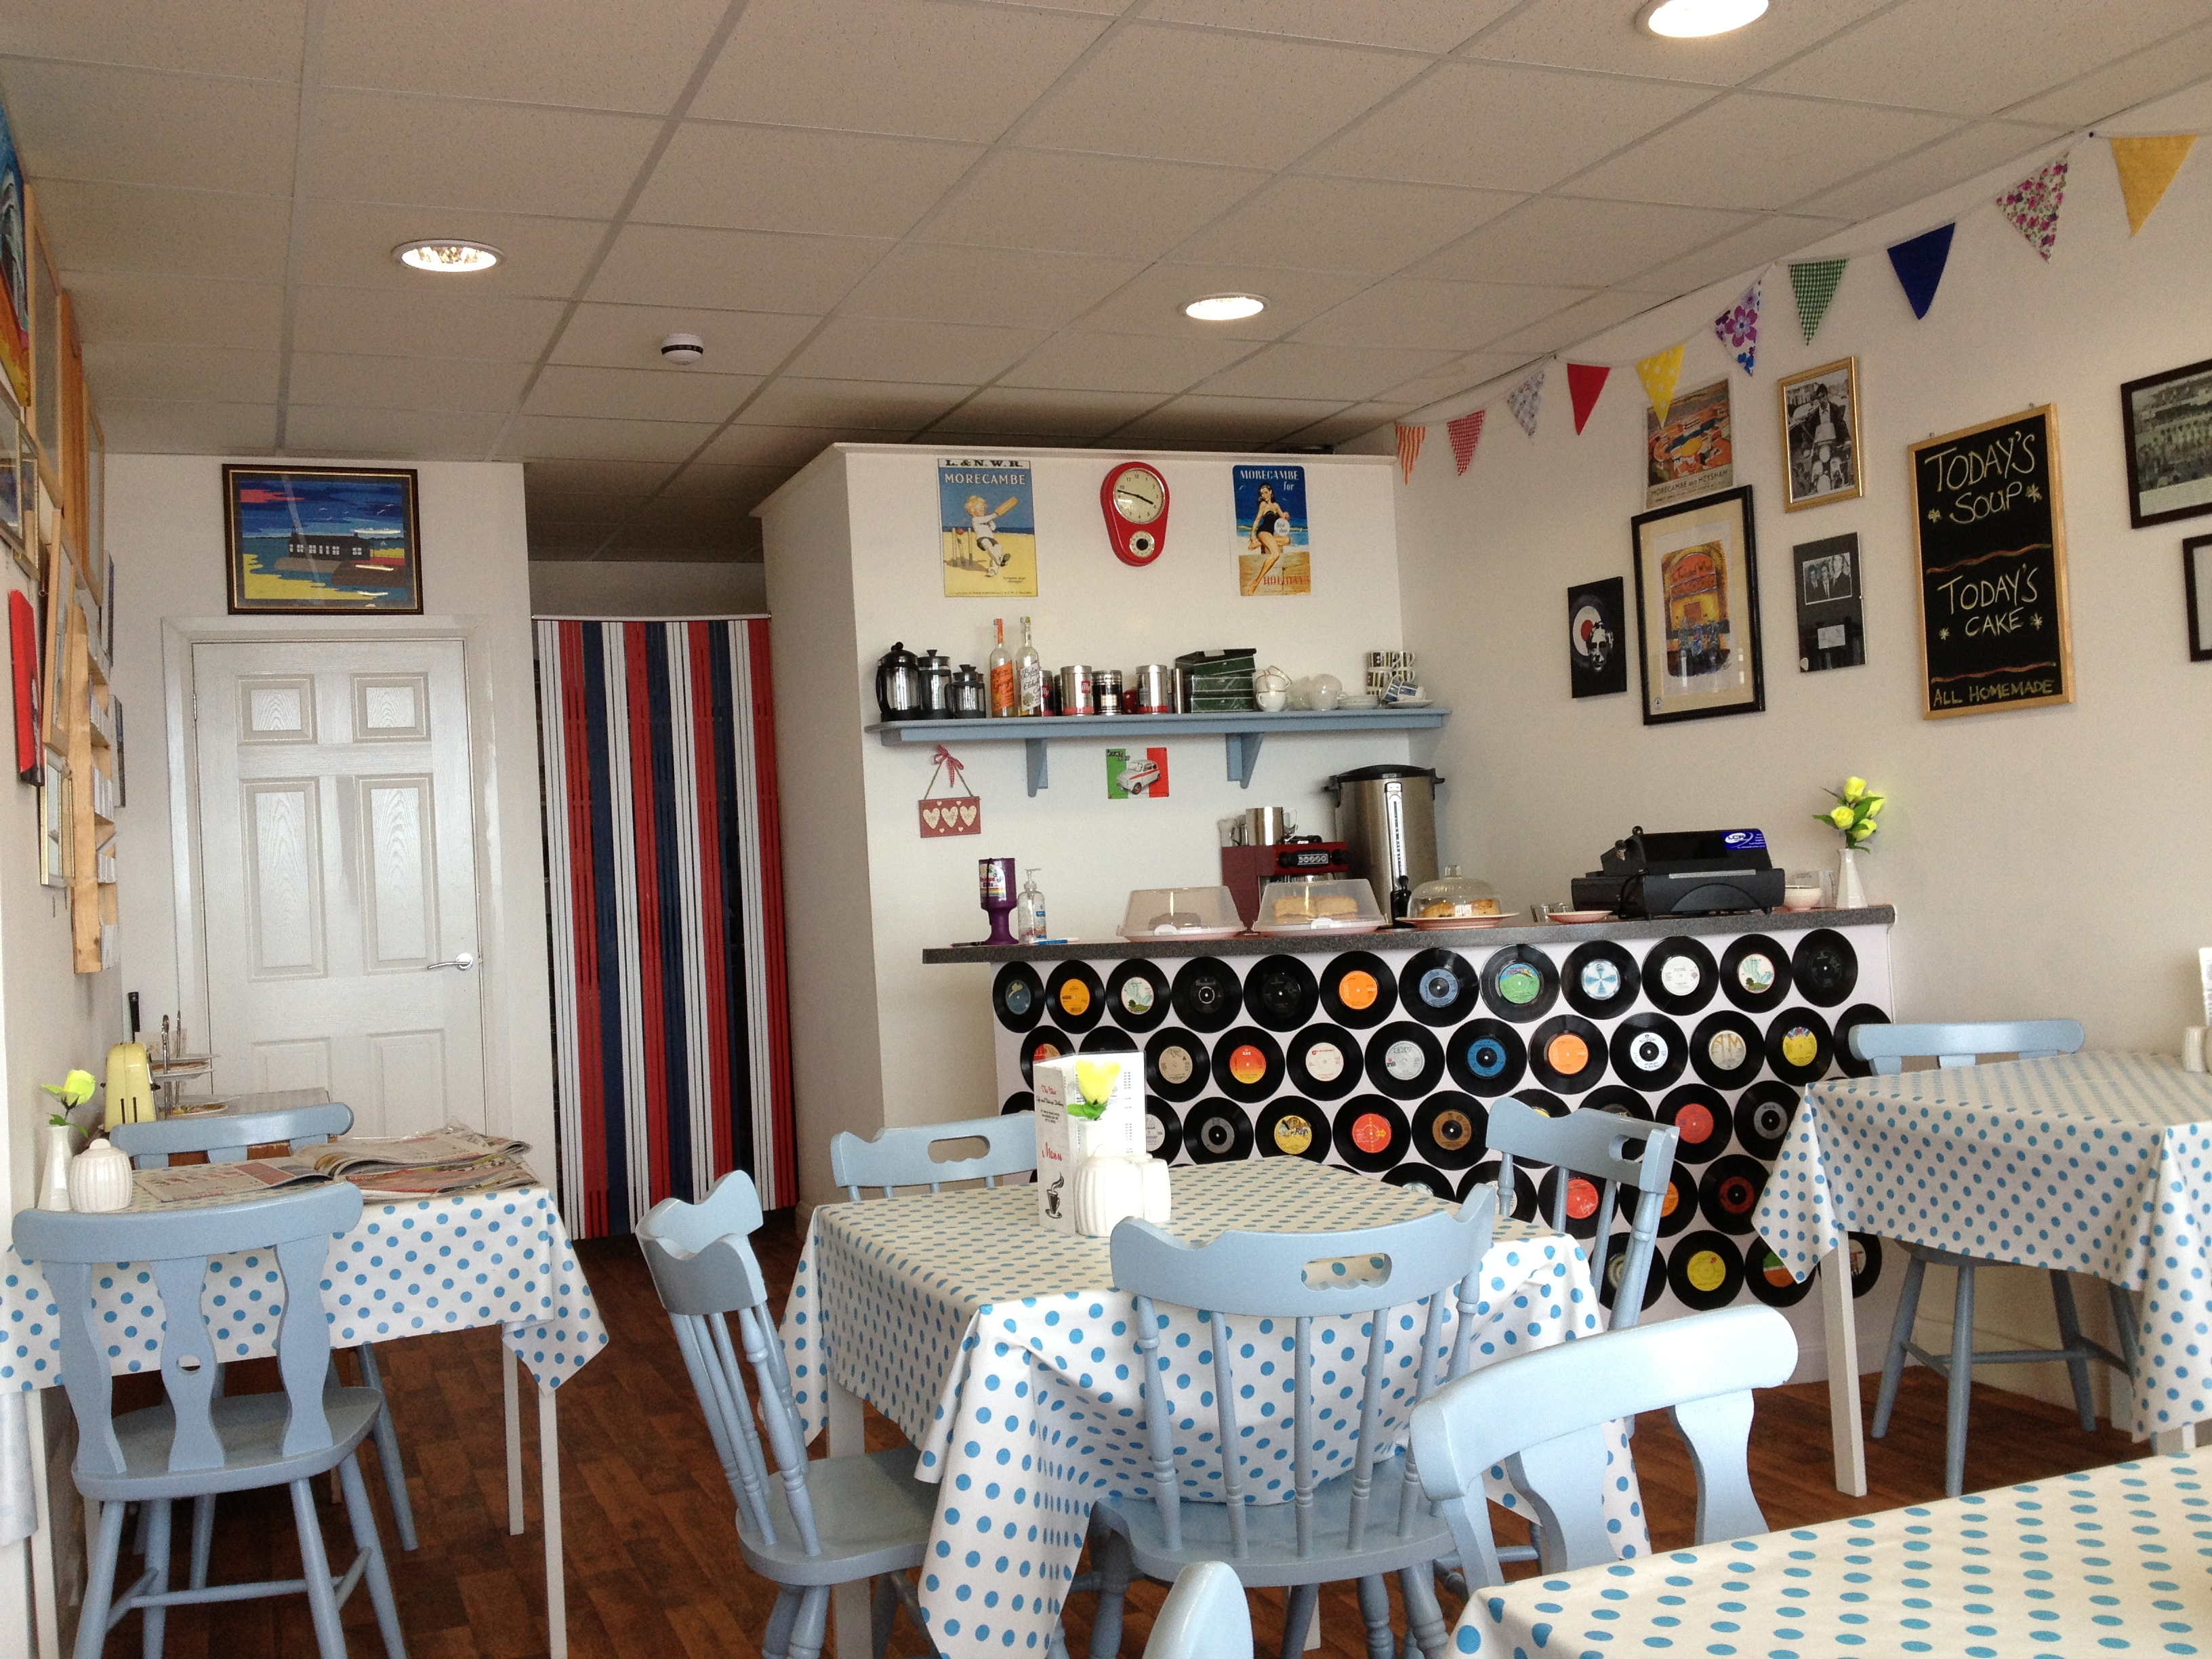 Vintage Café Morecambe Bay S The View Vintage Cafe Paupers Pocket